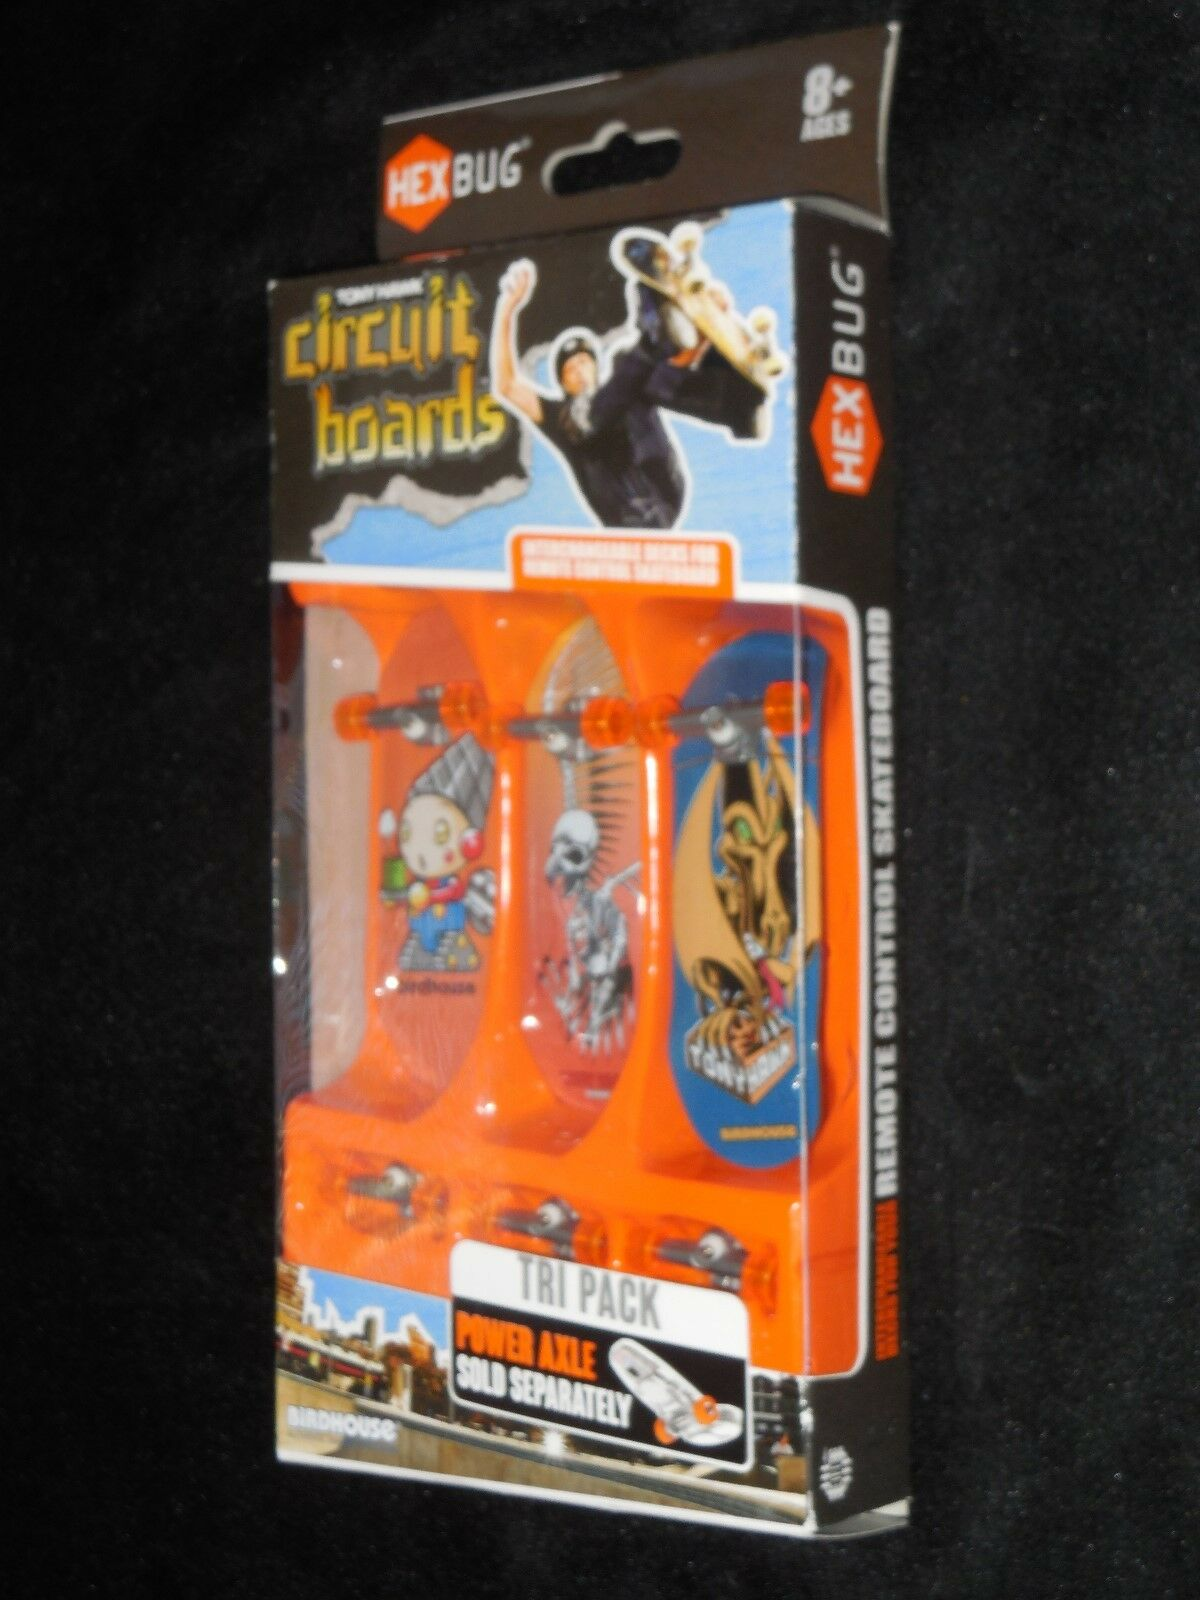 Hexbugcircuitboard14 Hexbug Tony Hawk Circuit Boards Collectors Series Ebay